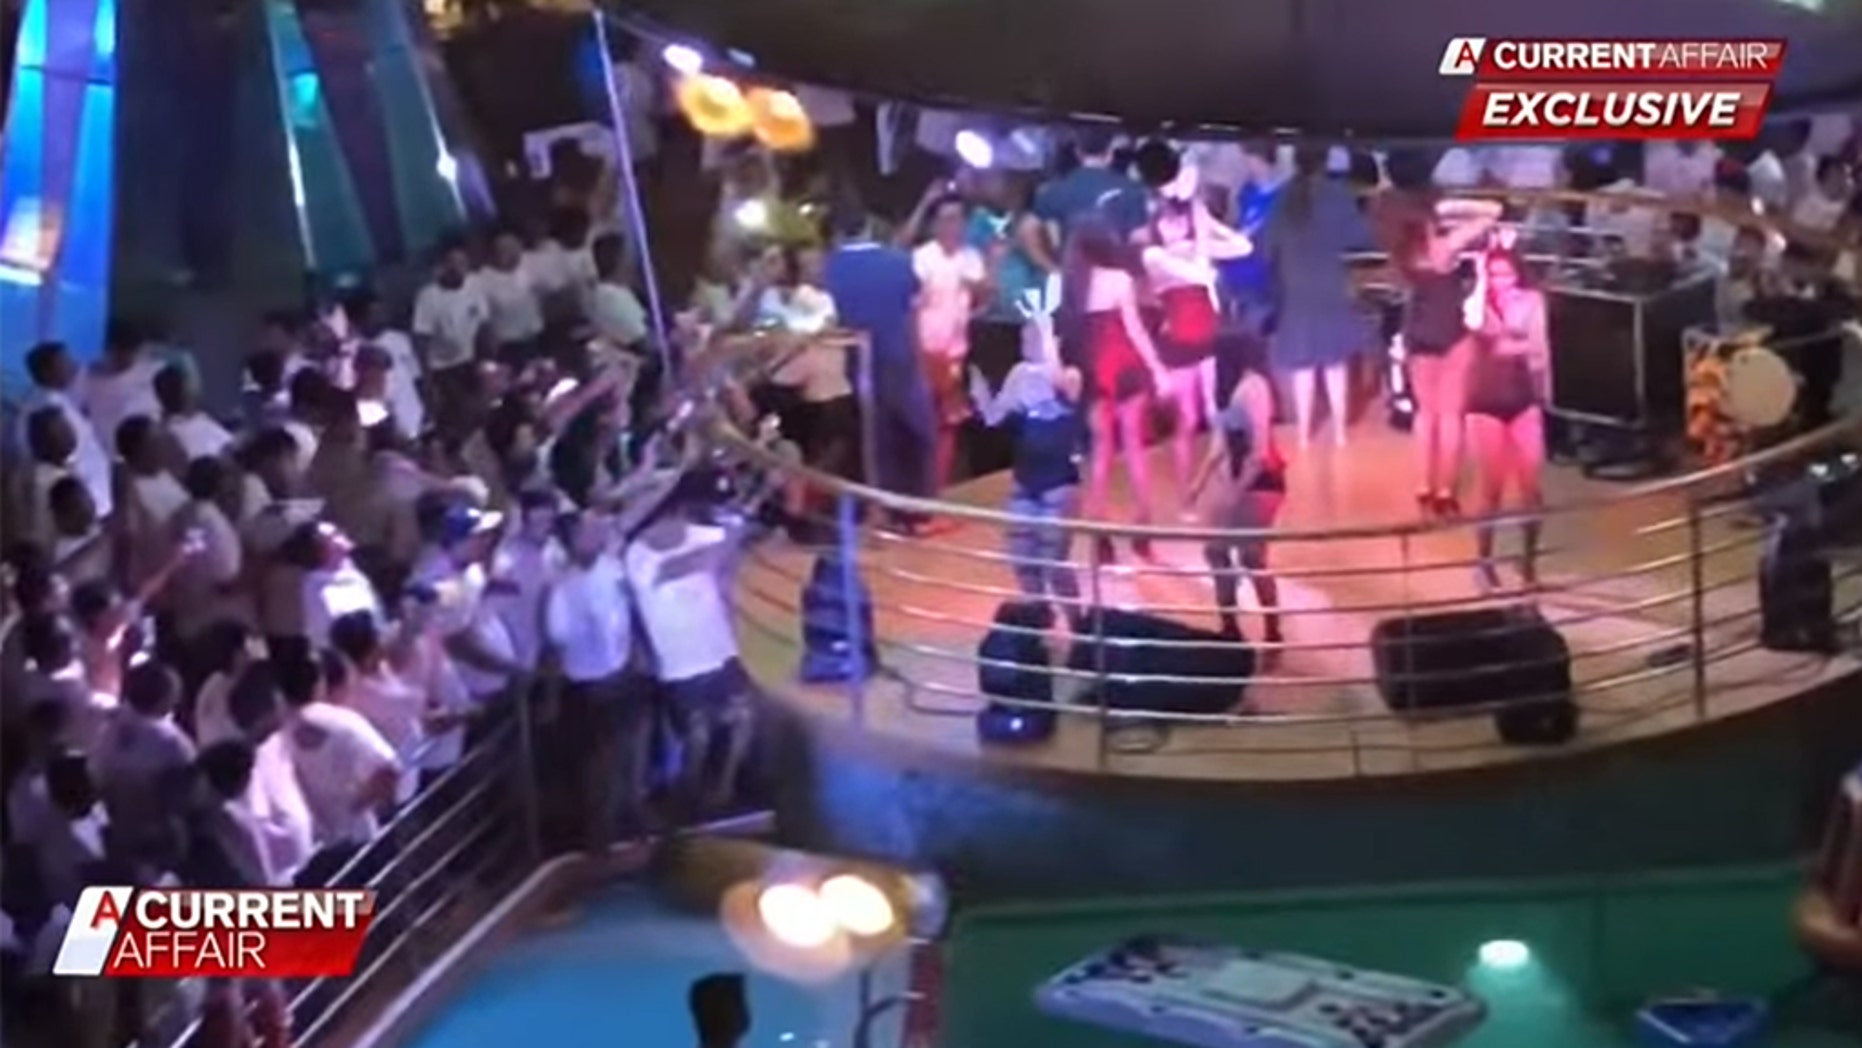 Royal Caribbean Refunds Passengers Shocked by Conference's 'Crazy' Burlesque Cruise